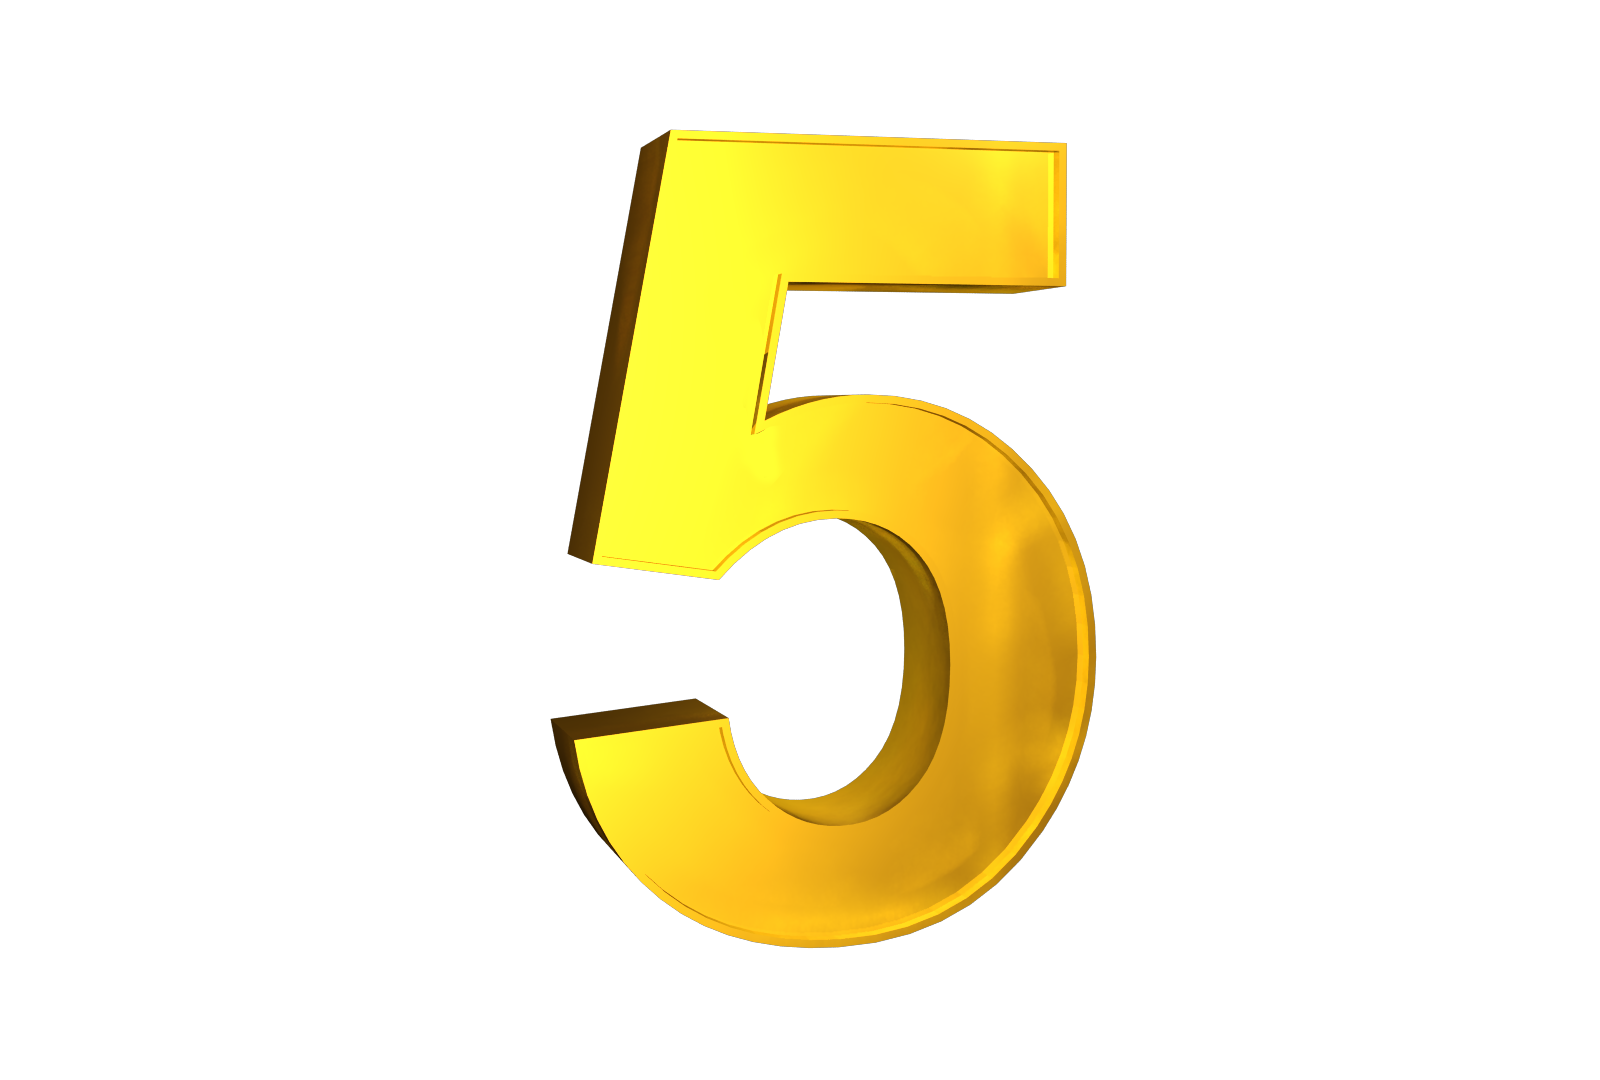 Number 5 PNG images free download.